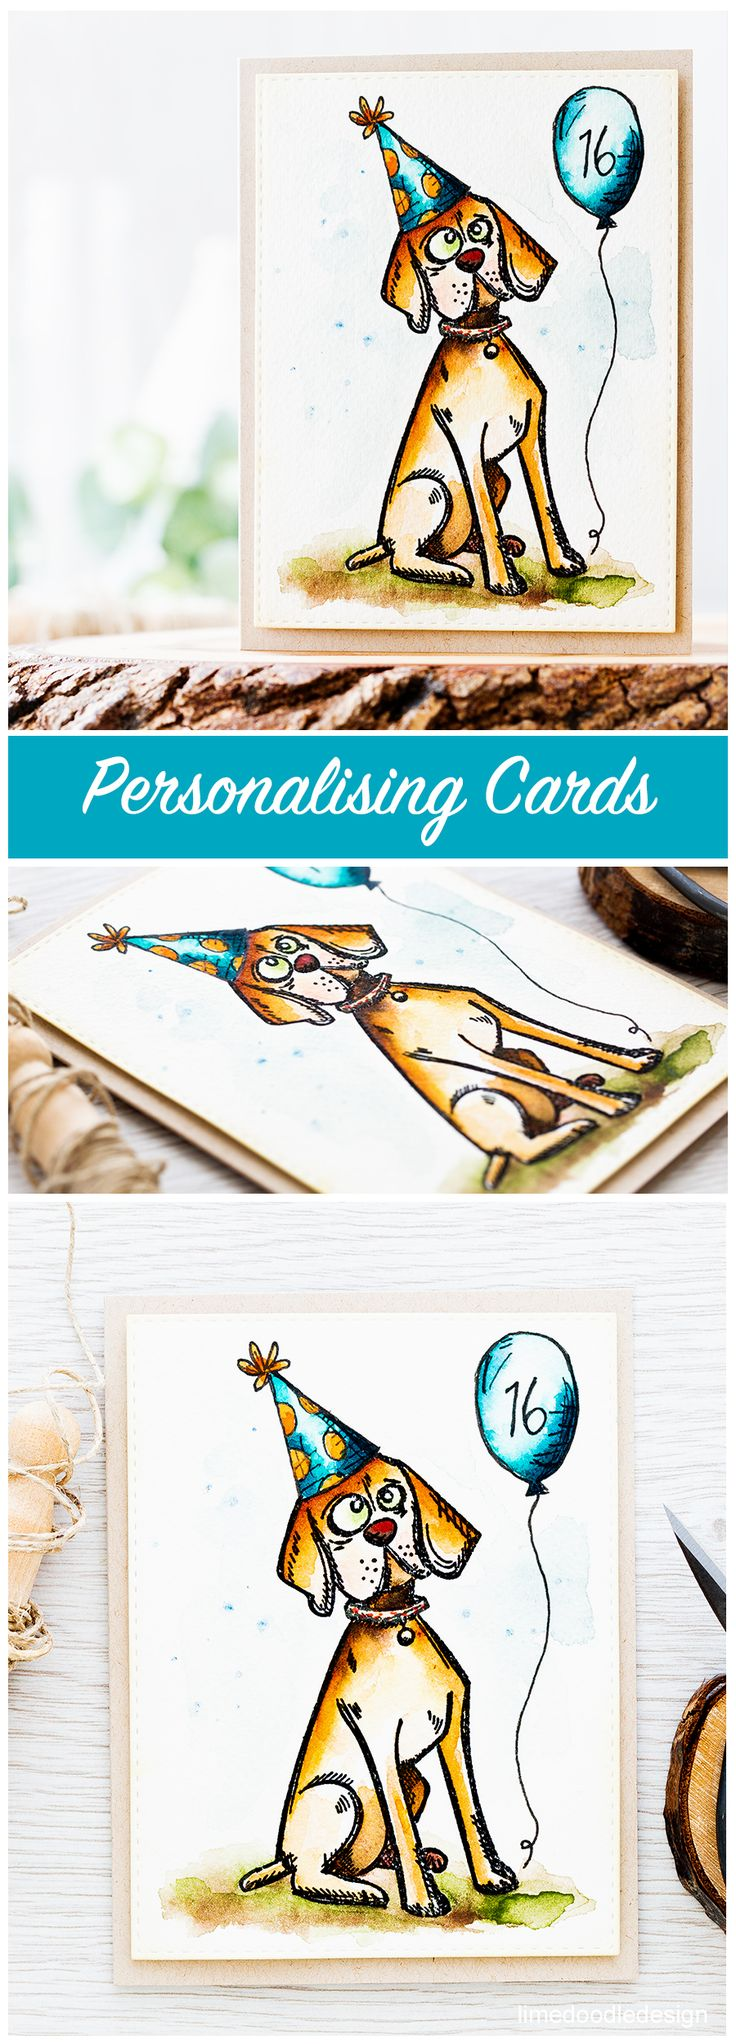 355 best simon says stamps images on pinterest handmade cards small touches to personalise an image can make a huge difference to the recipient find bookmarktalkfo Gallery